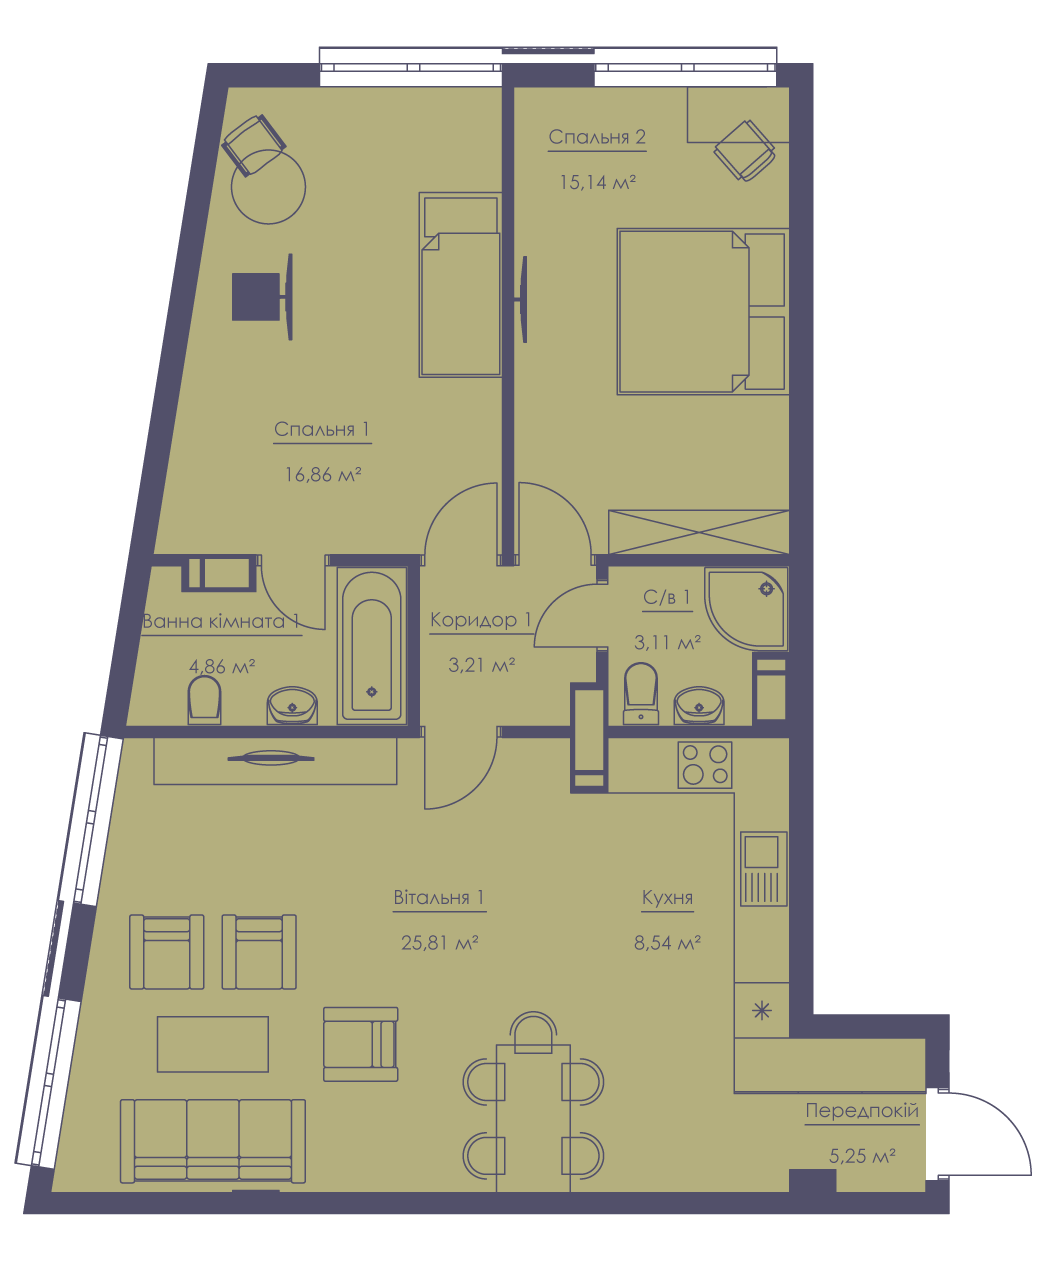 Apartment layout KV_86_3n_1_1_7-1